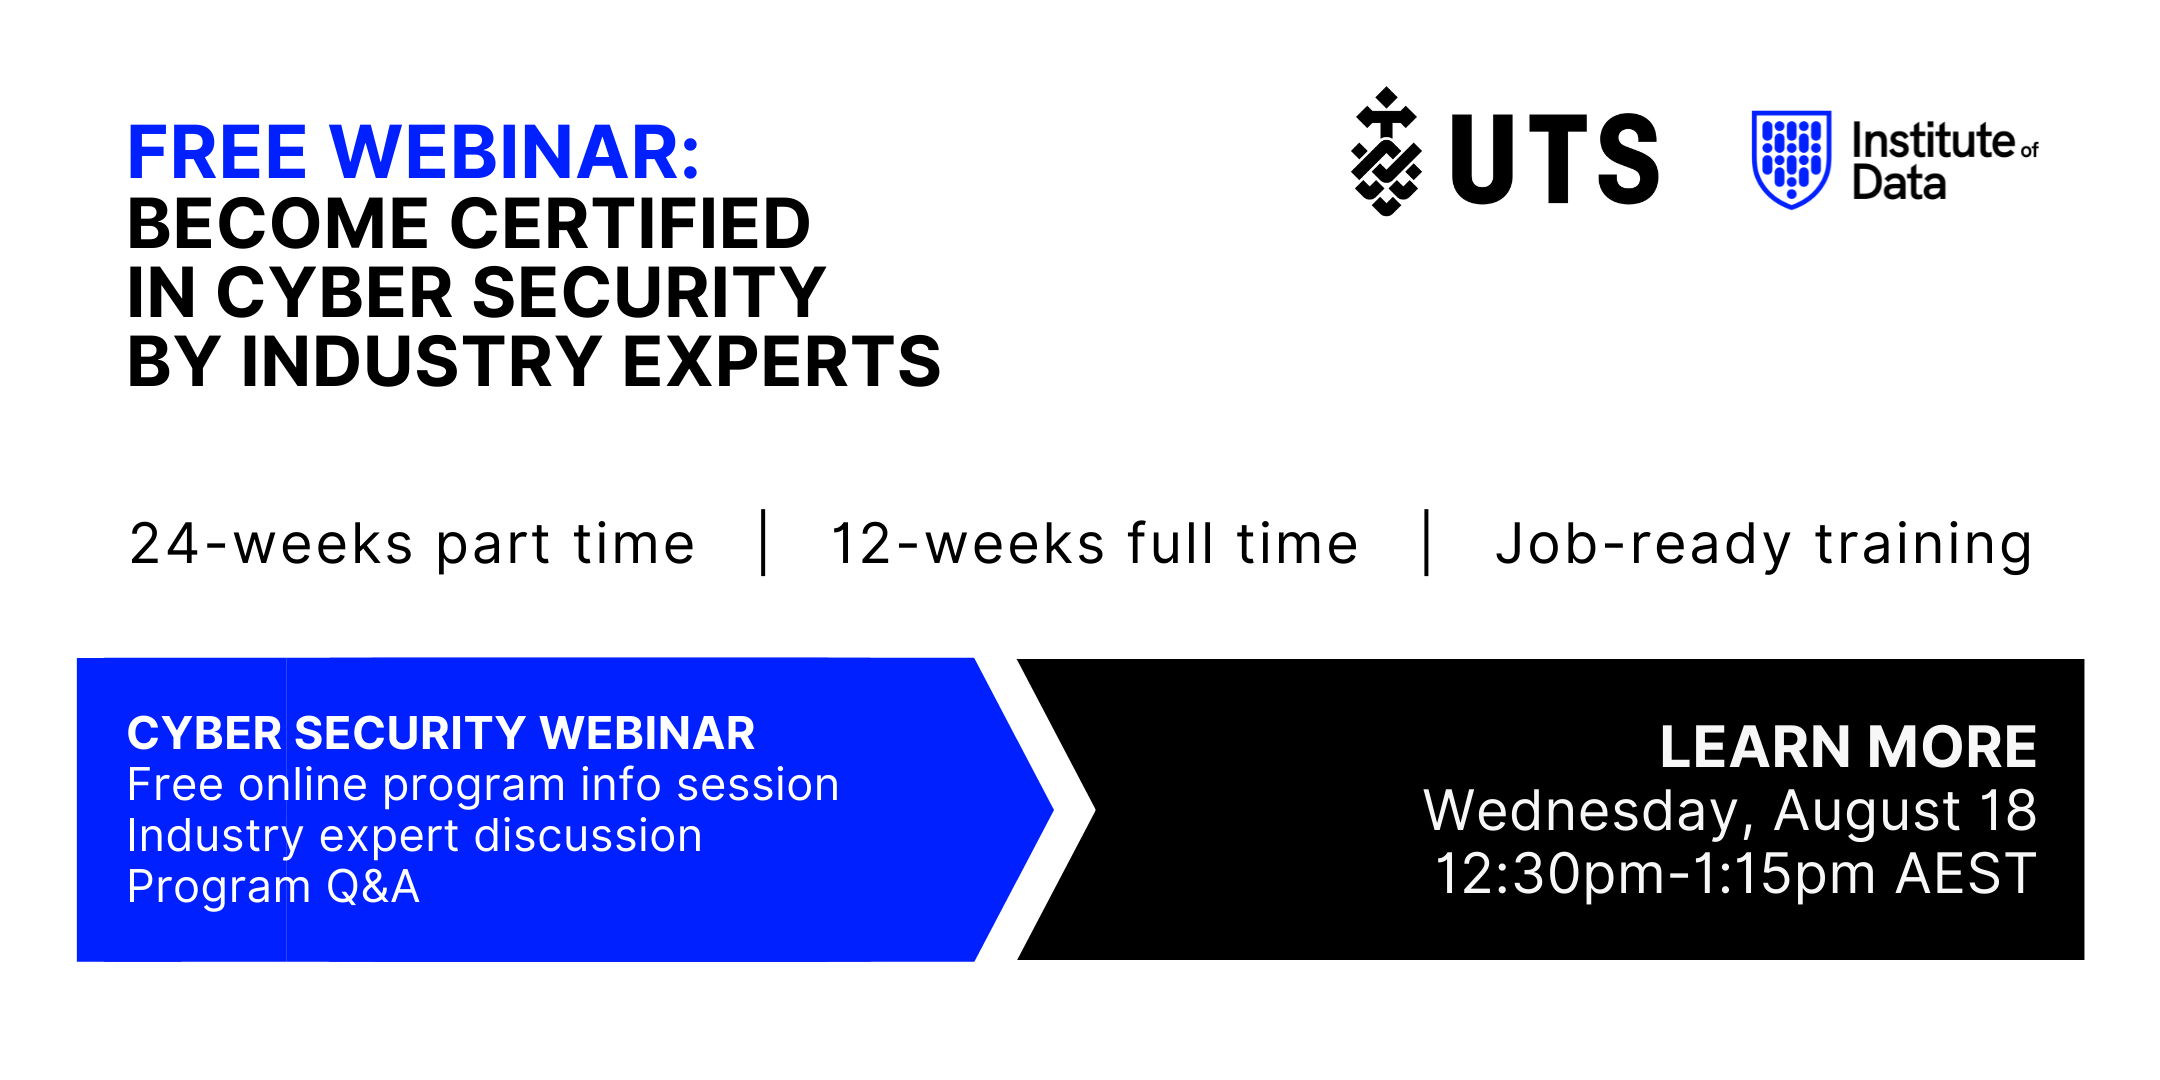 Institute of Data UTS - Cyber Security Program - Online Info Session - August 18 2021